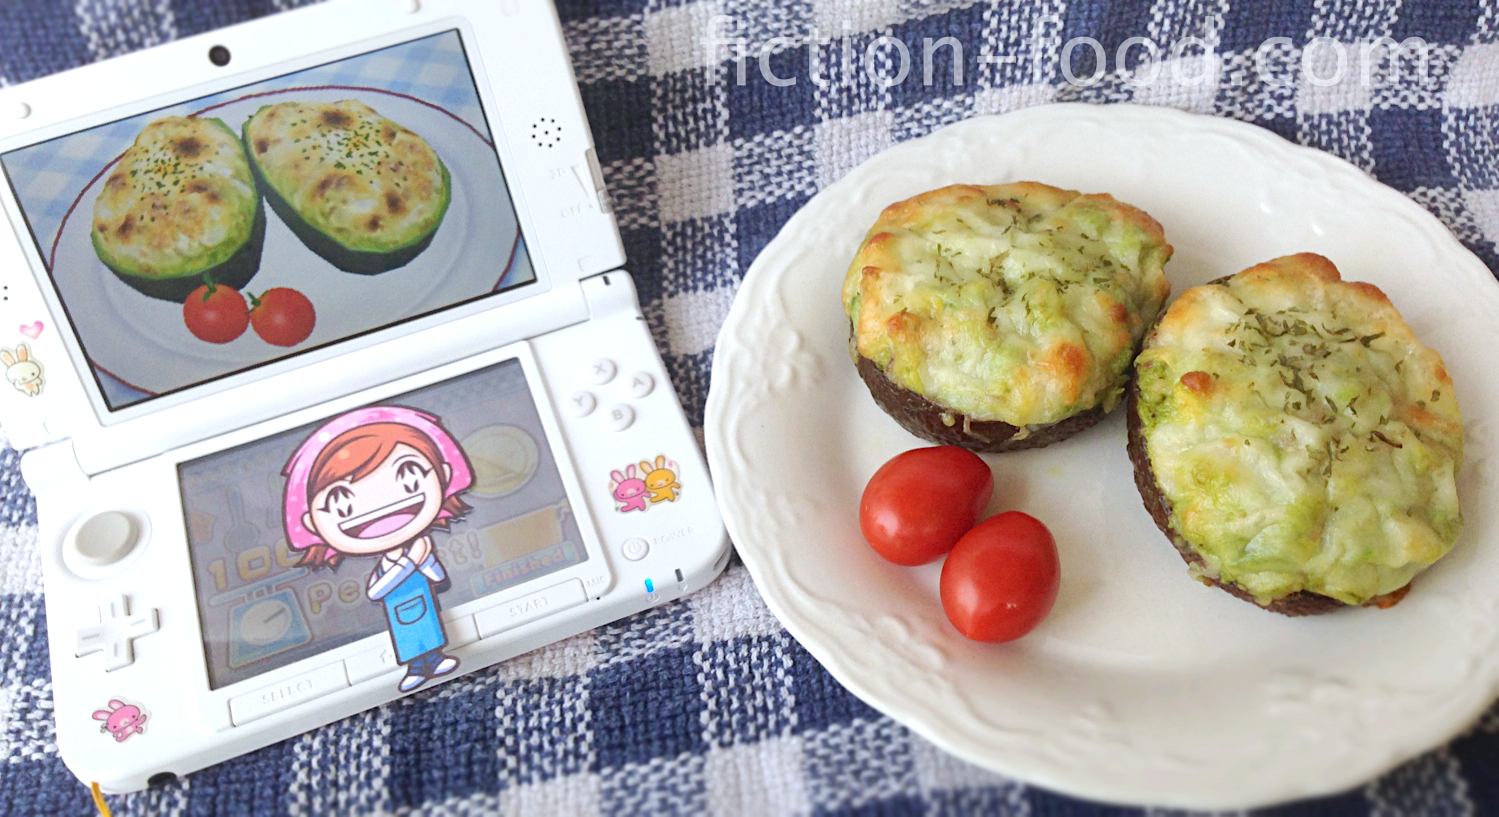 Fiction Food Caf Avocado Gratin From Cooking Mama 4 Kitchen Magic